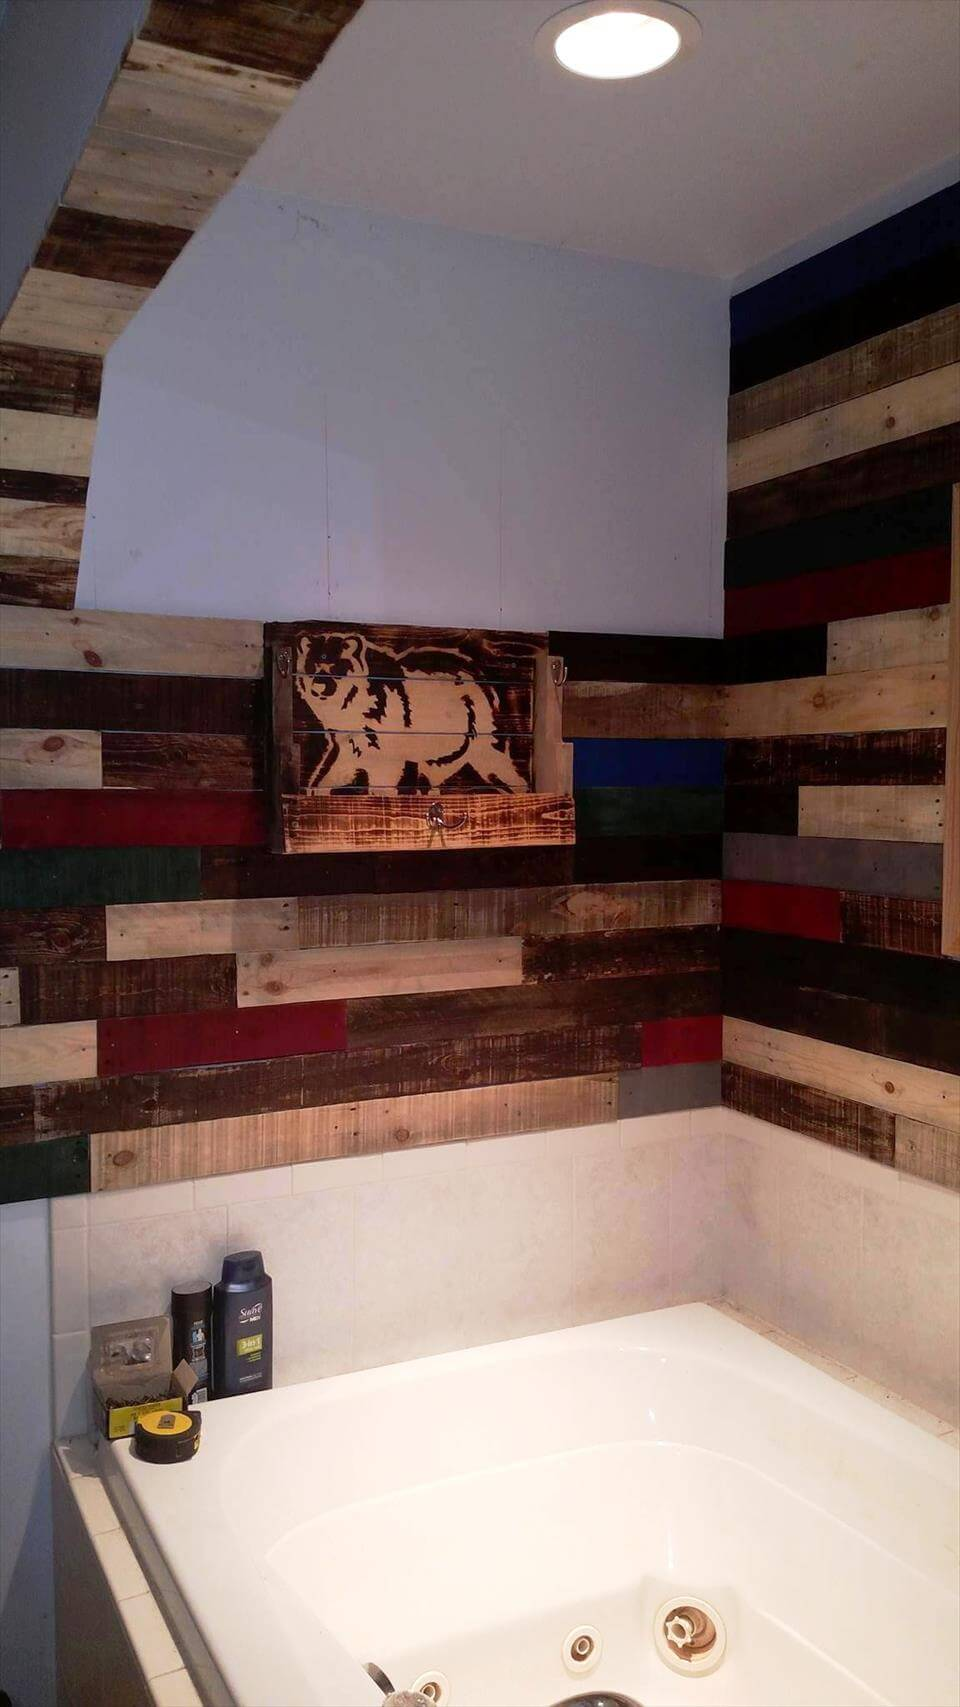 Diy Pallet Bathroom Wall Paneling: Pallet Wall Paneling Project Around The Jacuzzi Bath Tub